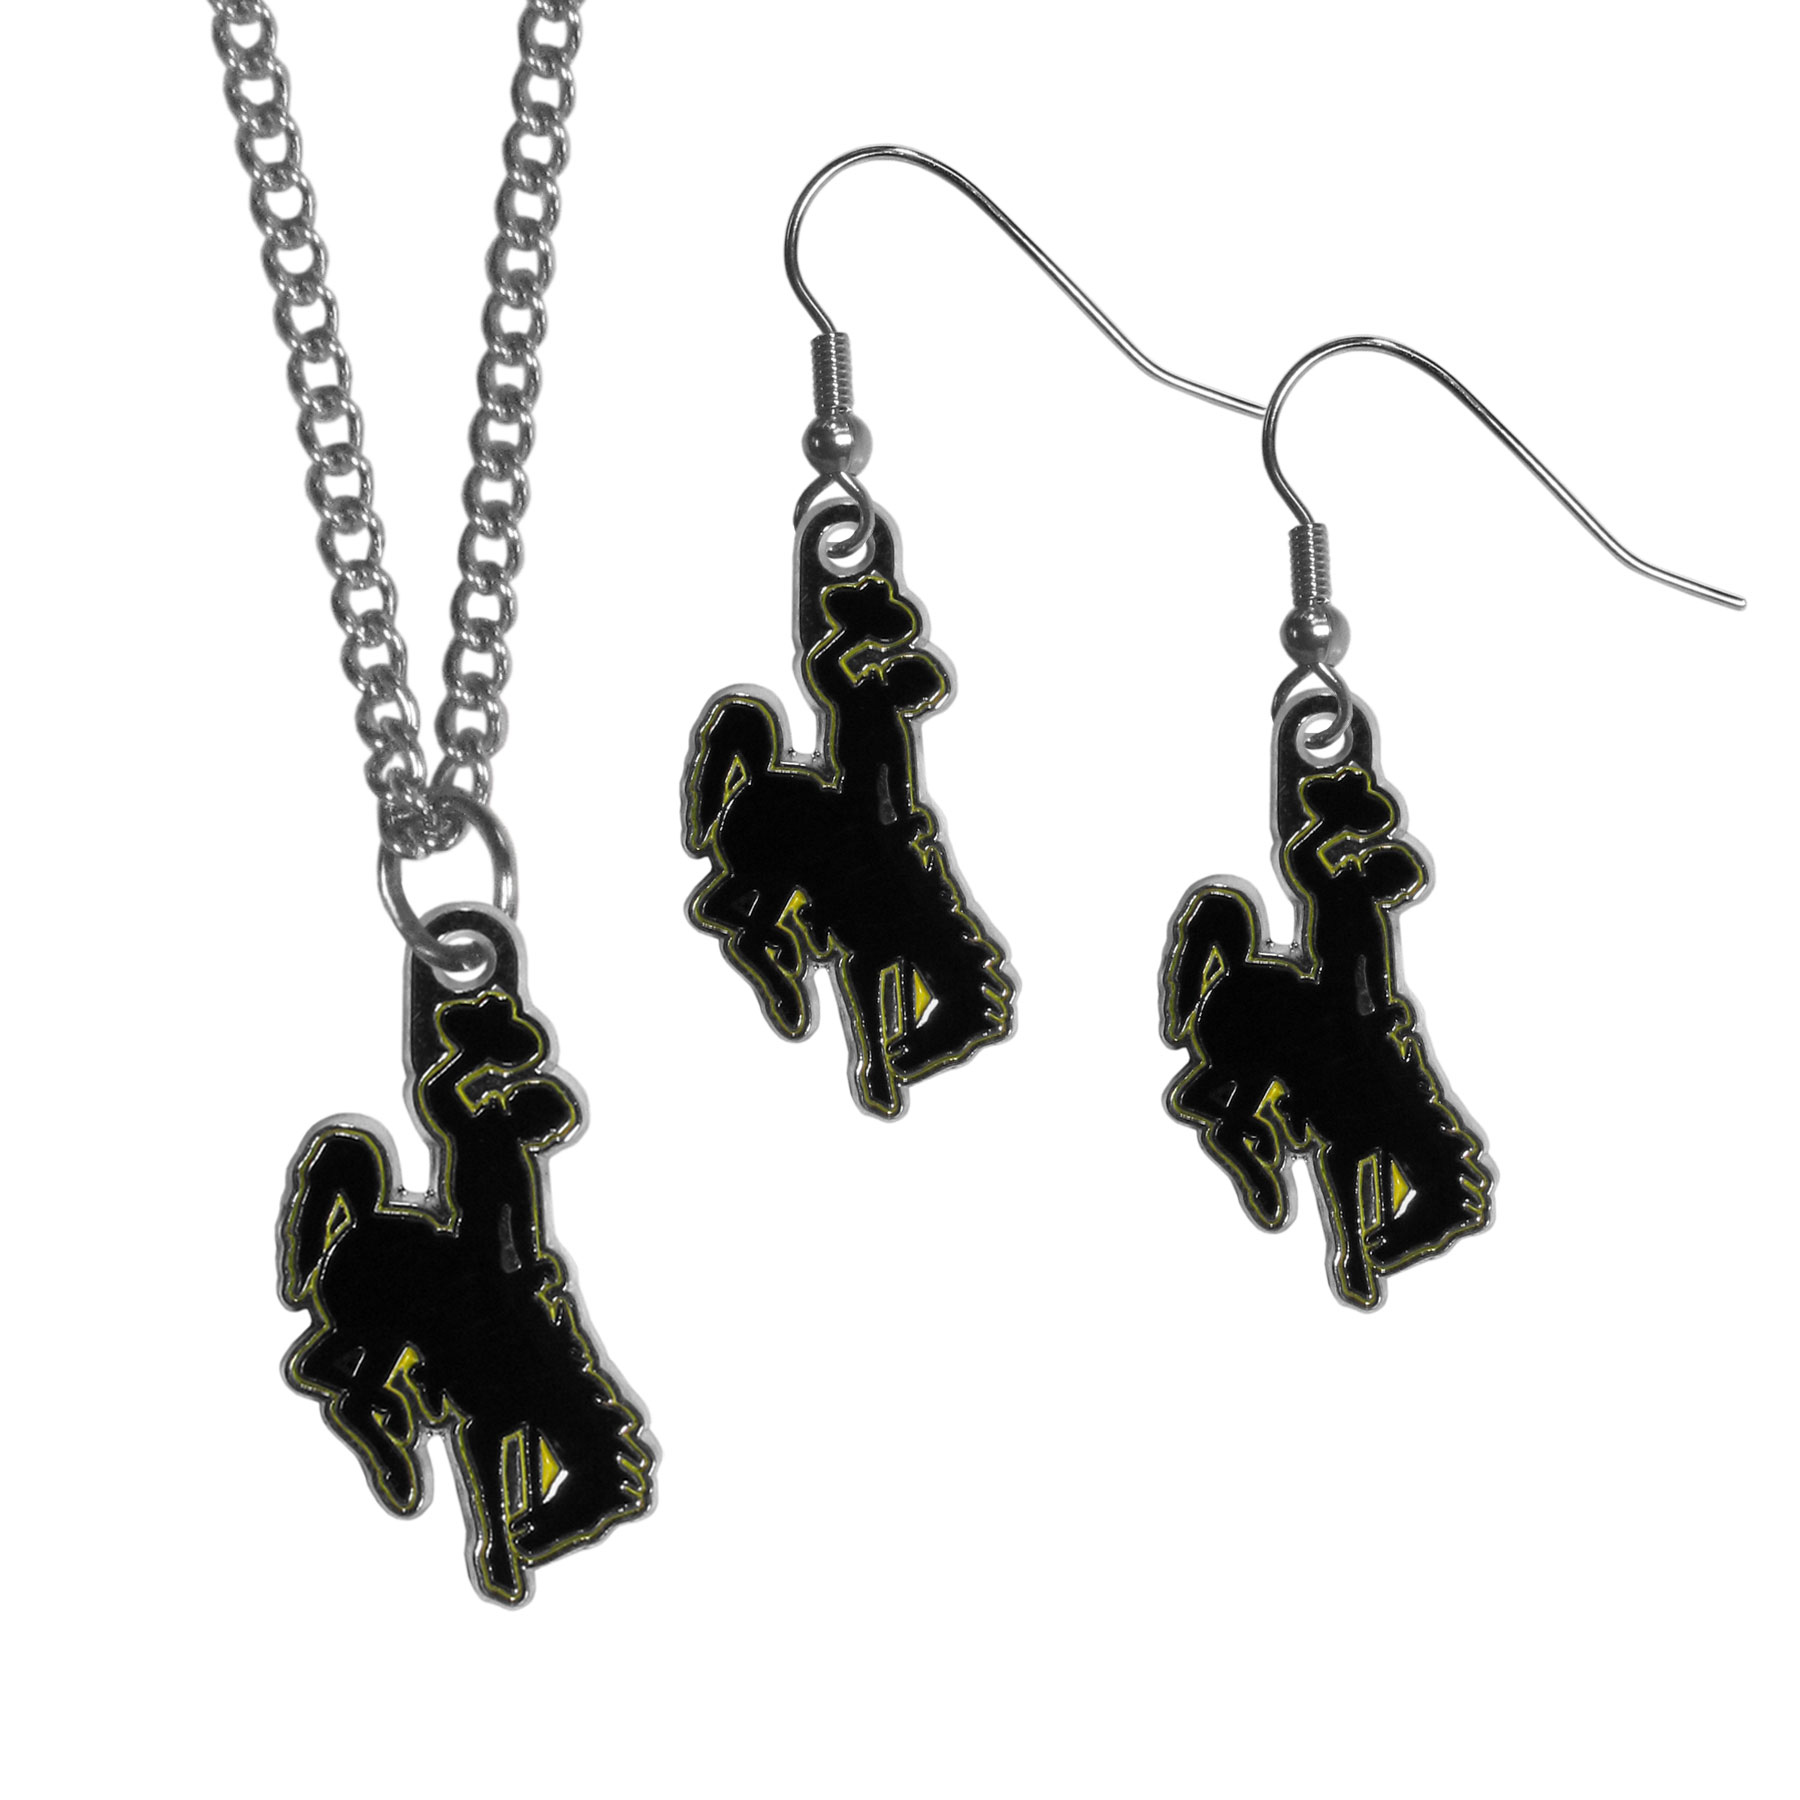 Wyoming Cowboys Dangle Earrings and Chain Necklace Set - This classic jewelry set contains are most popular Wyoming Cowboy dangle earrings and 22 inch chain necklace. The trendy, dangle earrings are lightweight and feature a fully cast metal team charm with enameled team colors. The matching necklace completes this fashion forward combo and is a spirited set that is perfect for game day but nice enough for everyday.